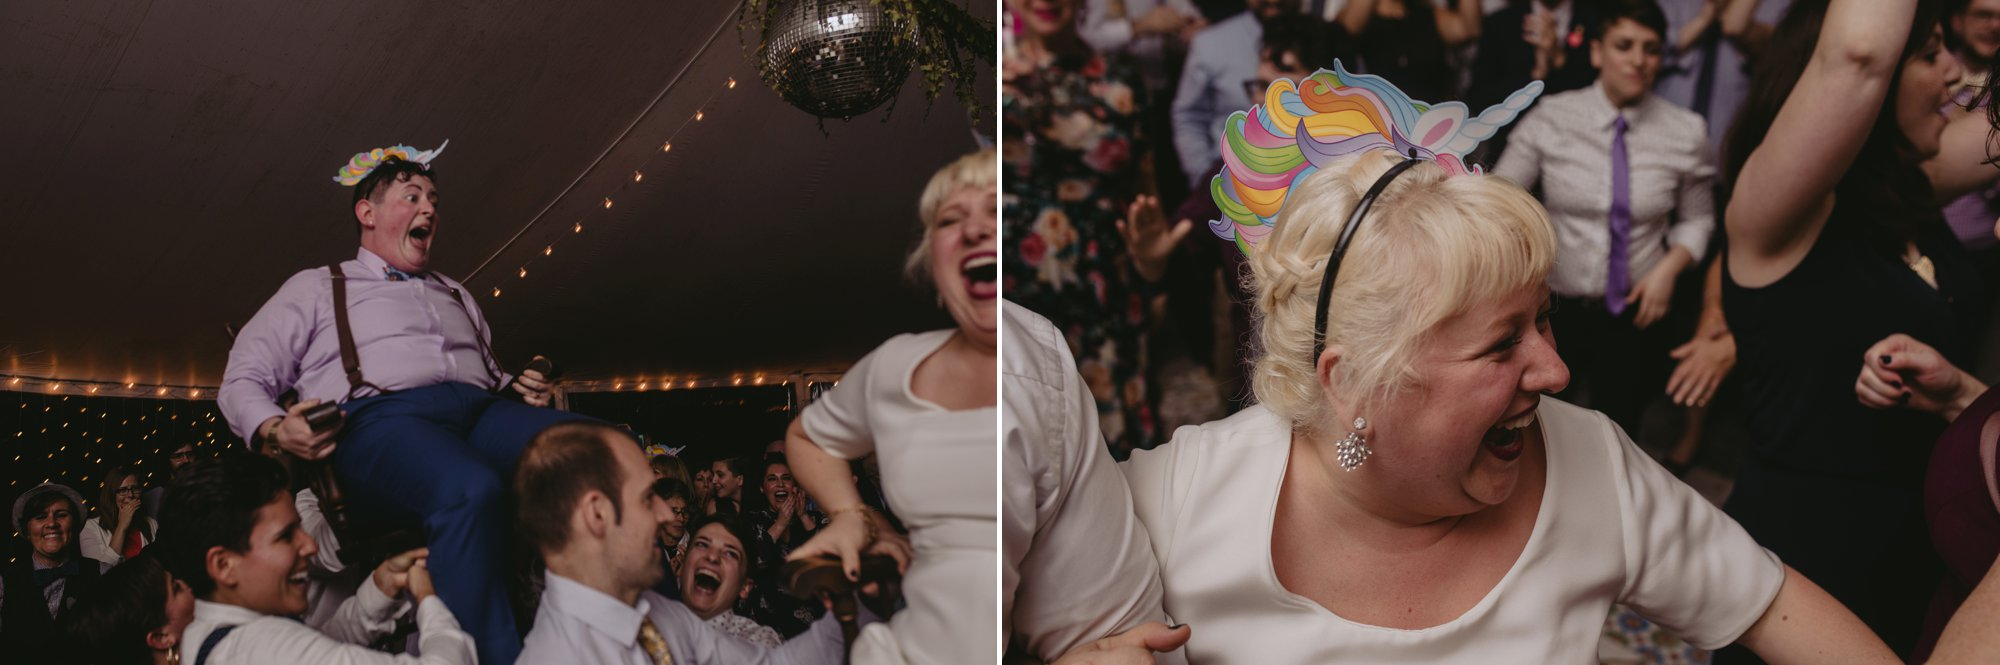 October Jewish lesbian wedding at Foxfire Mountain House in Upstate New York. Party party party.